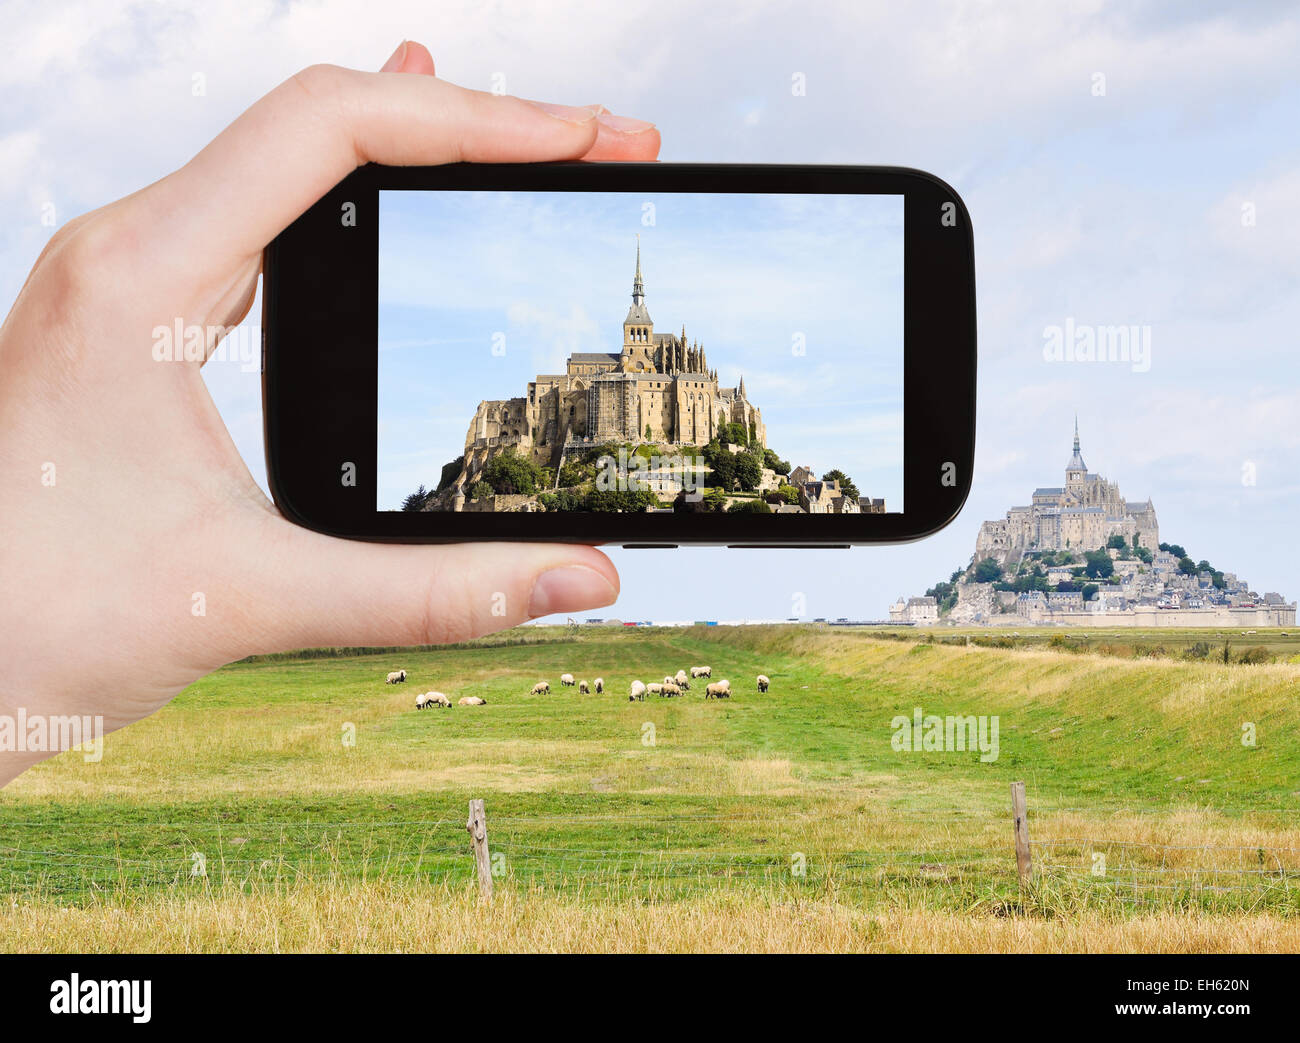 travel concept - tourist take photo of mont saint-michel abbey, Normandy, France on mobile gadget - Stock Image